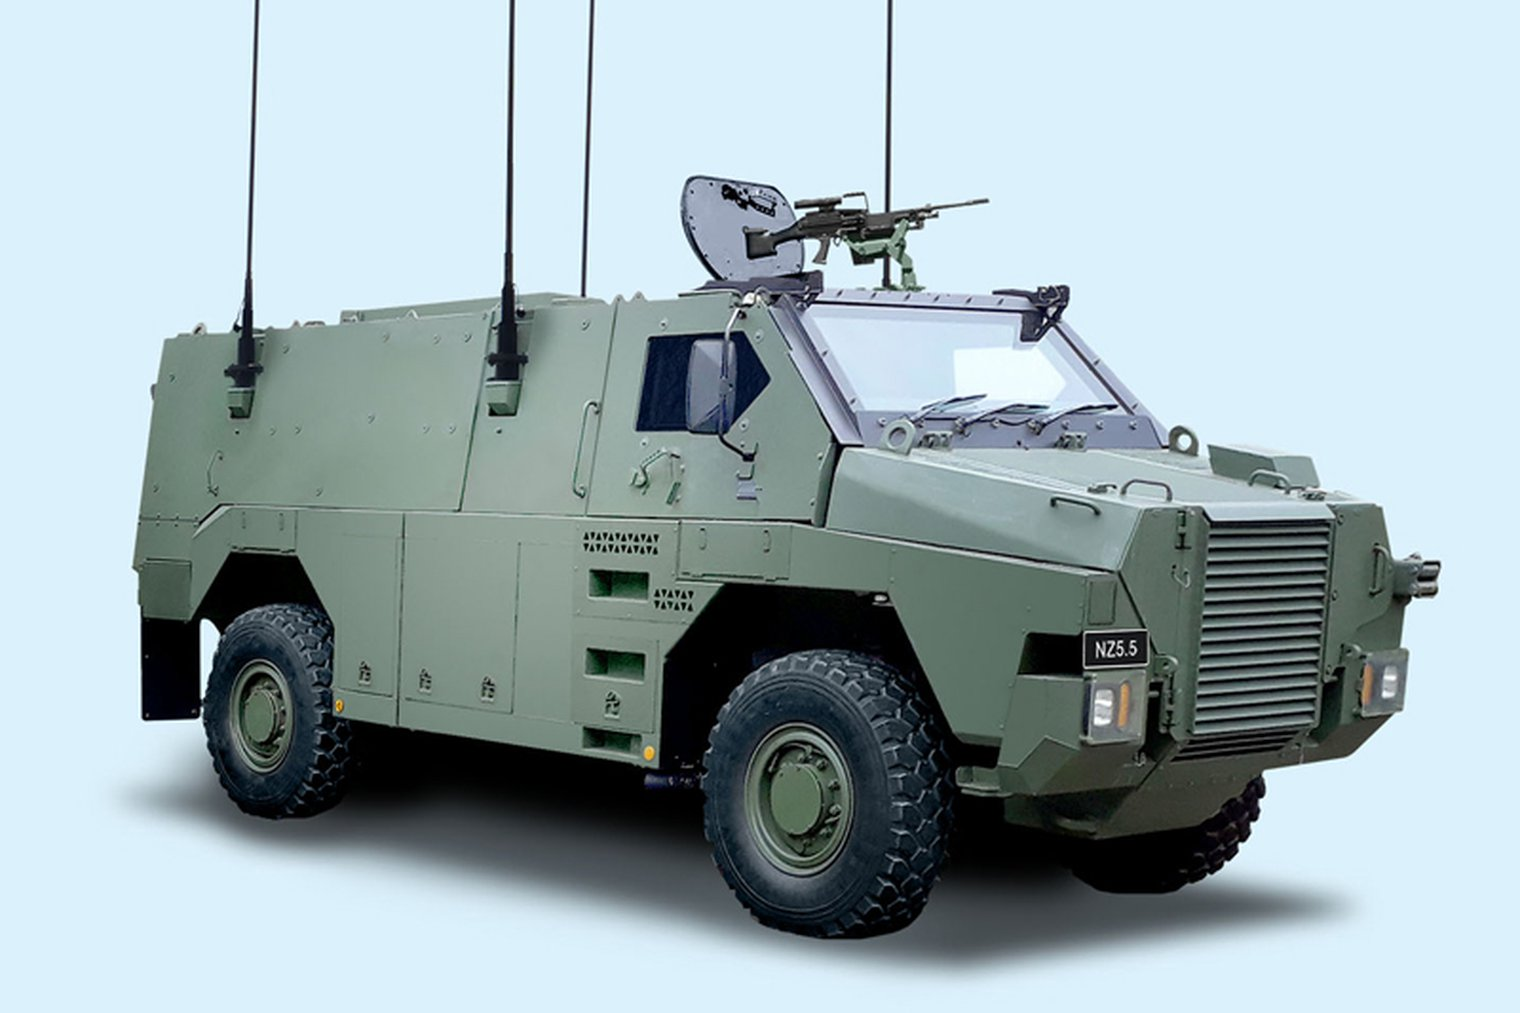 New Zealand Army to Buy 43 Bushmaster NZ5.5 Protected Vehicles